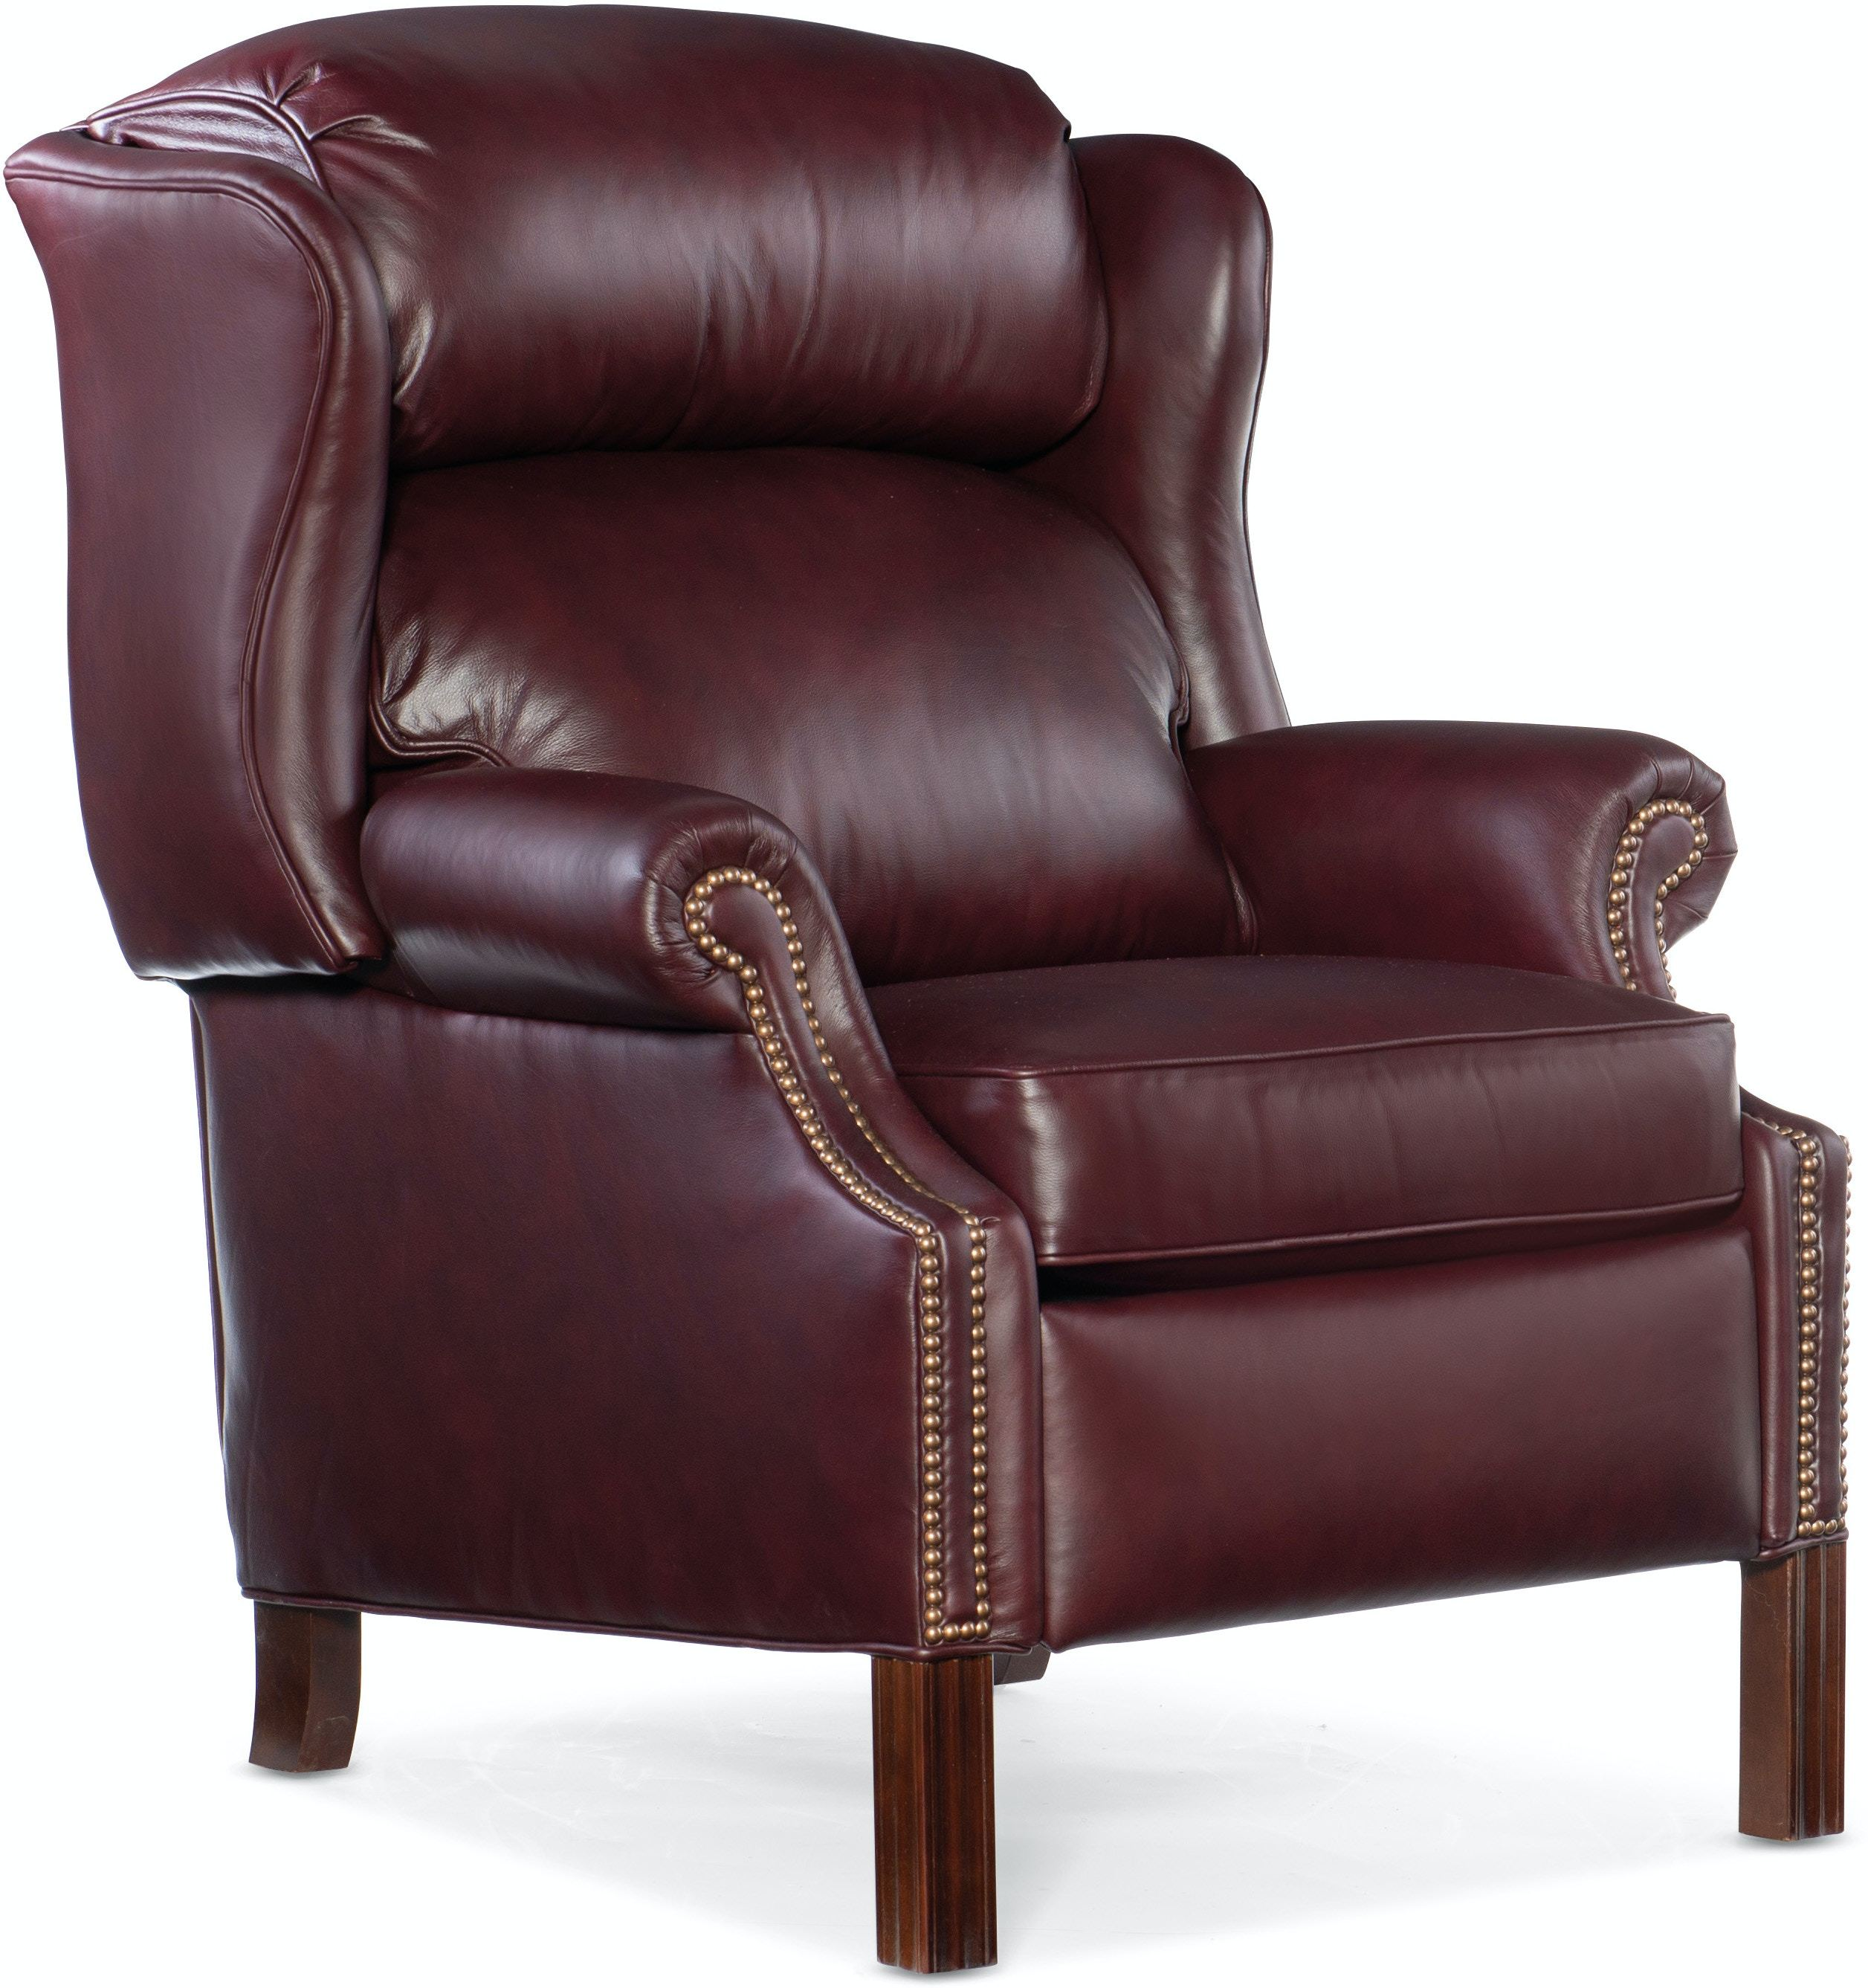 Chippendale Leather Reclining Wing Chair By Bradington Young 2922 Callan Furniture